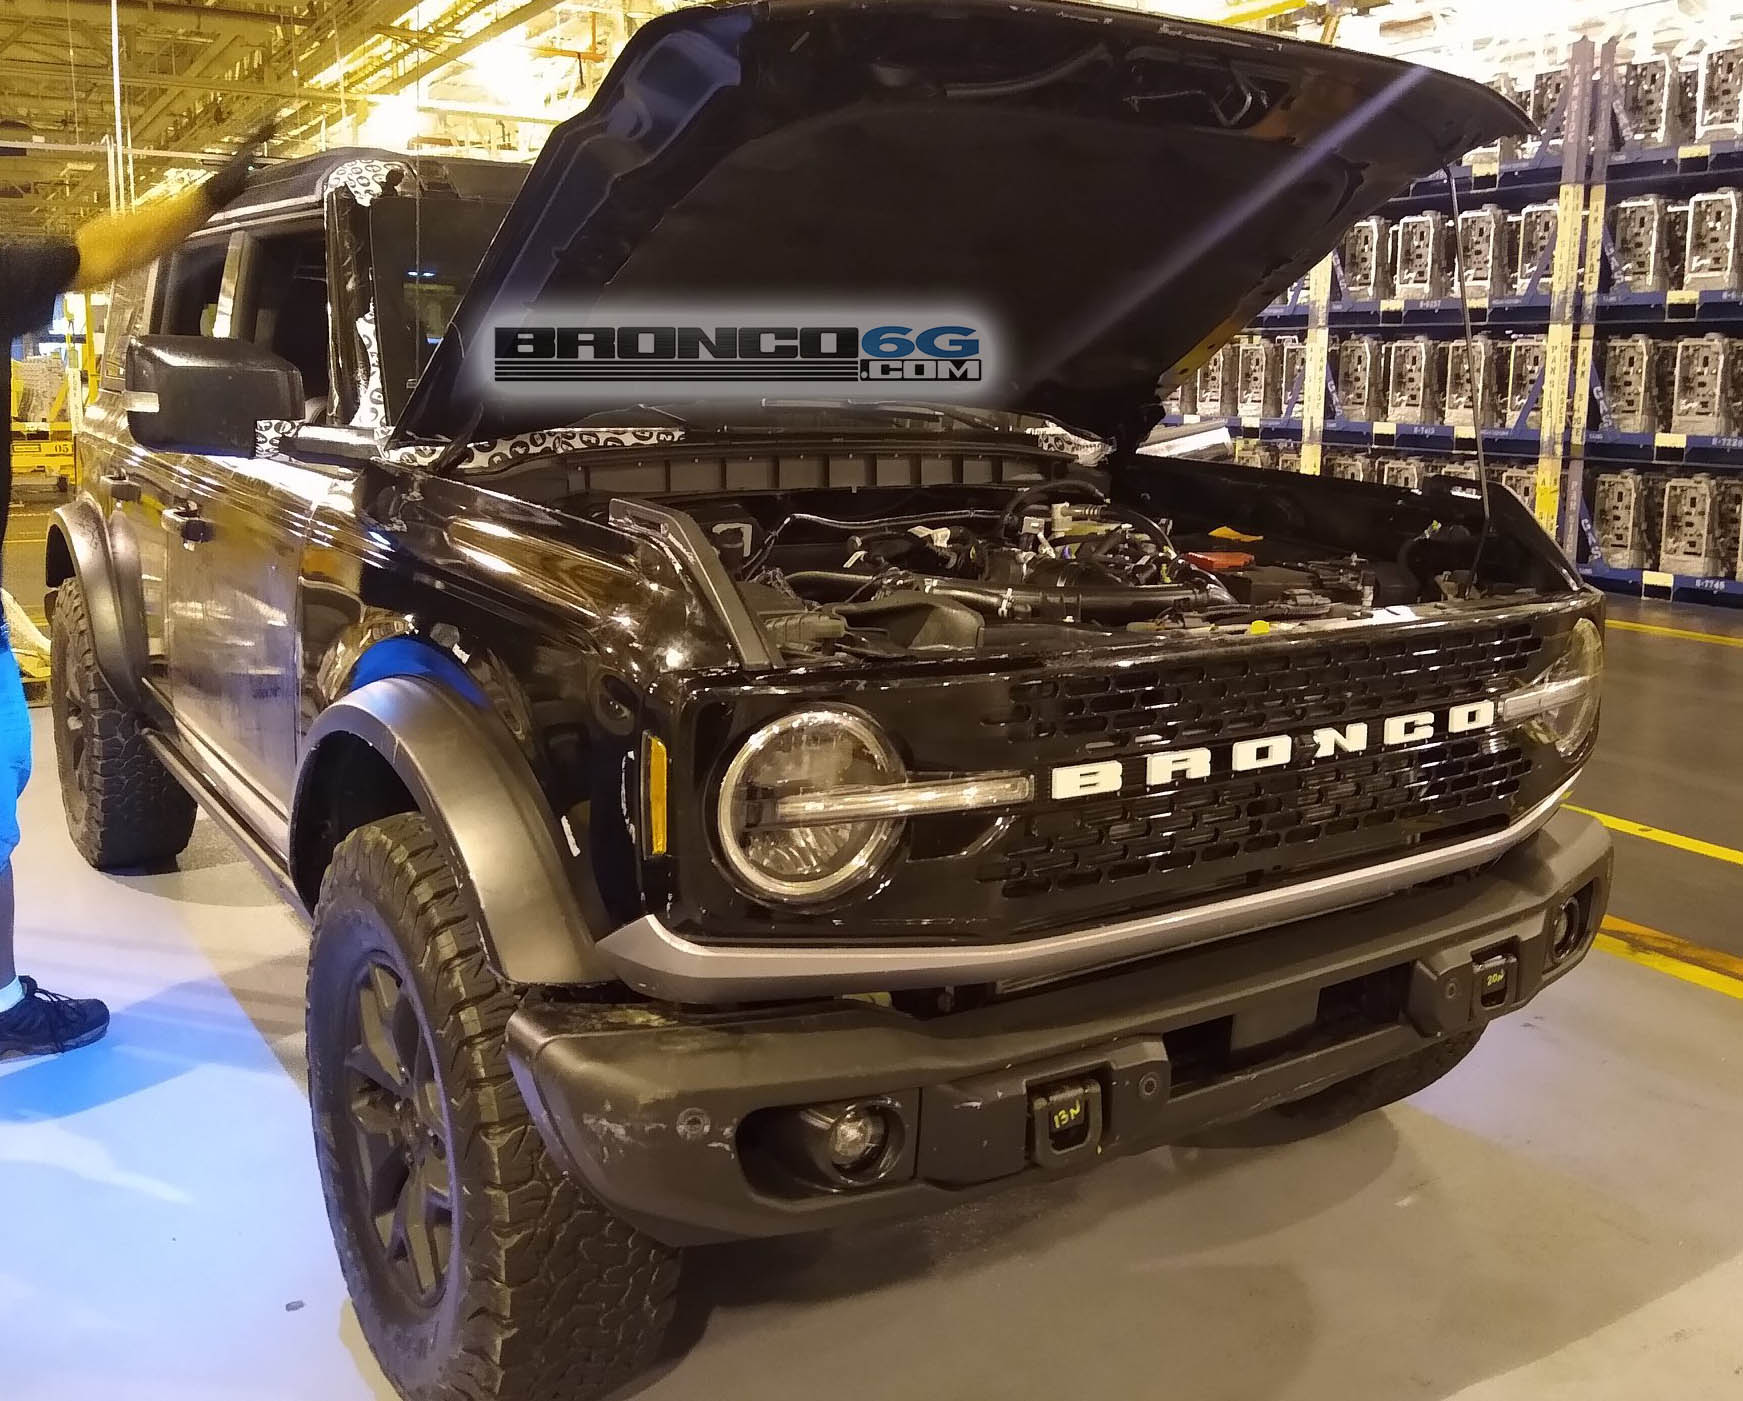 2021 ford bronco badlands looks stealthy in preproduction